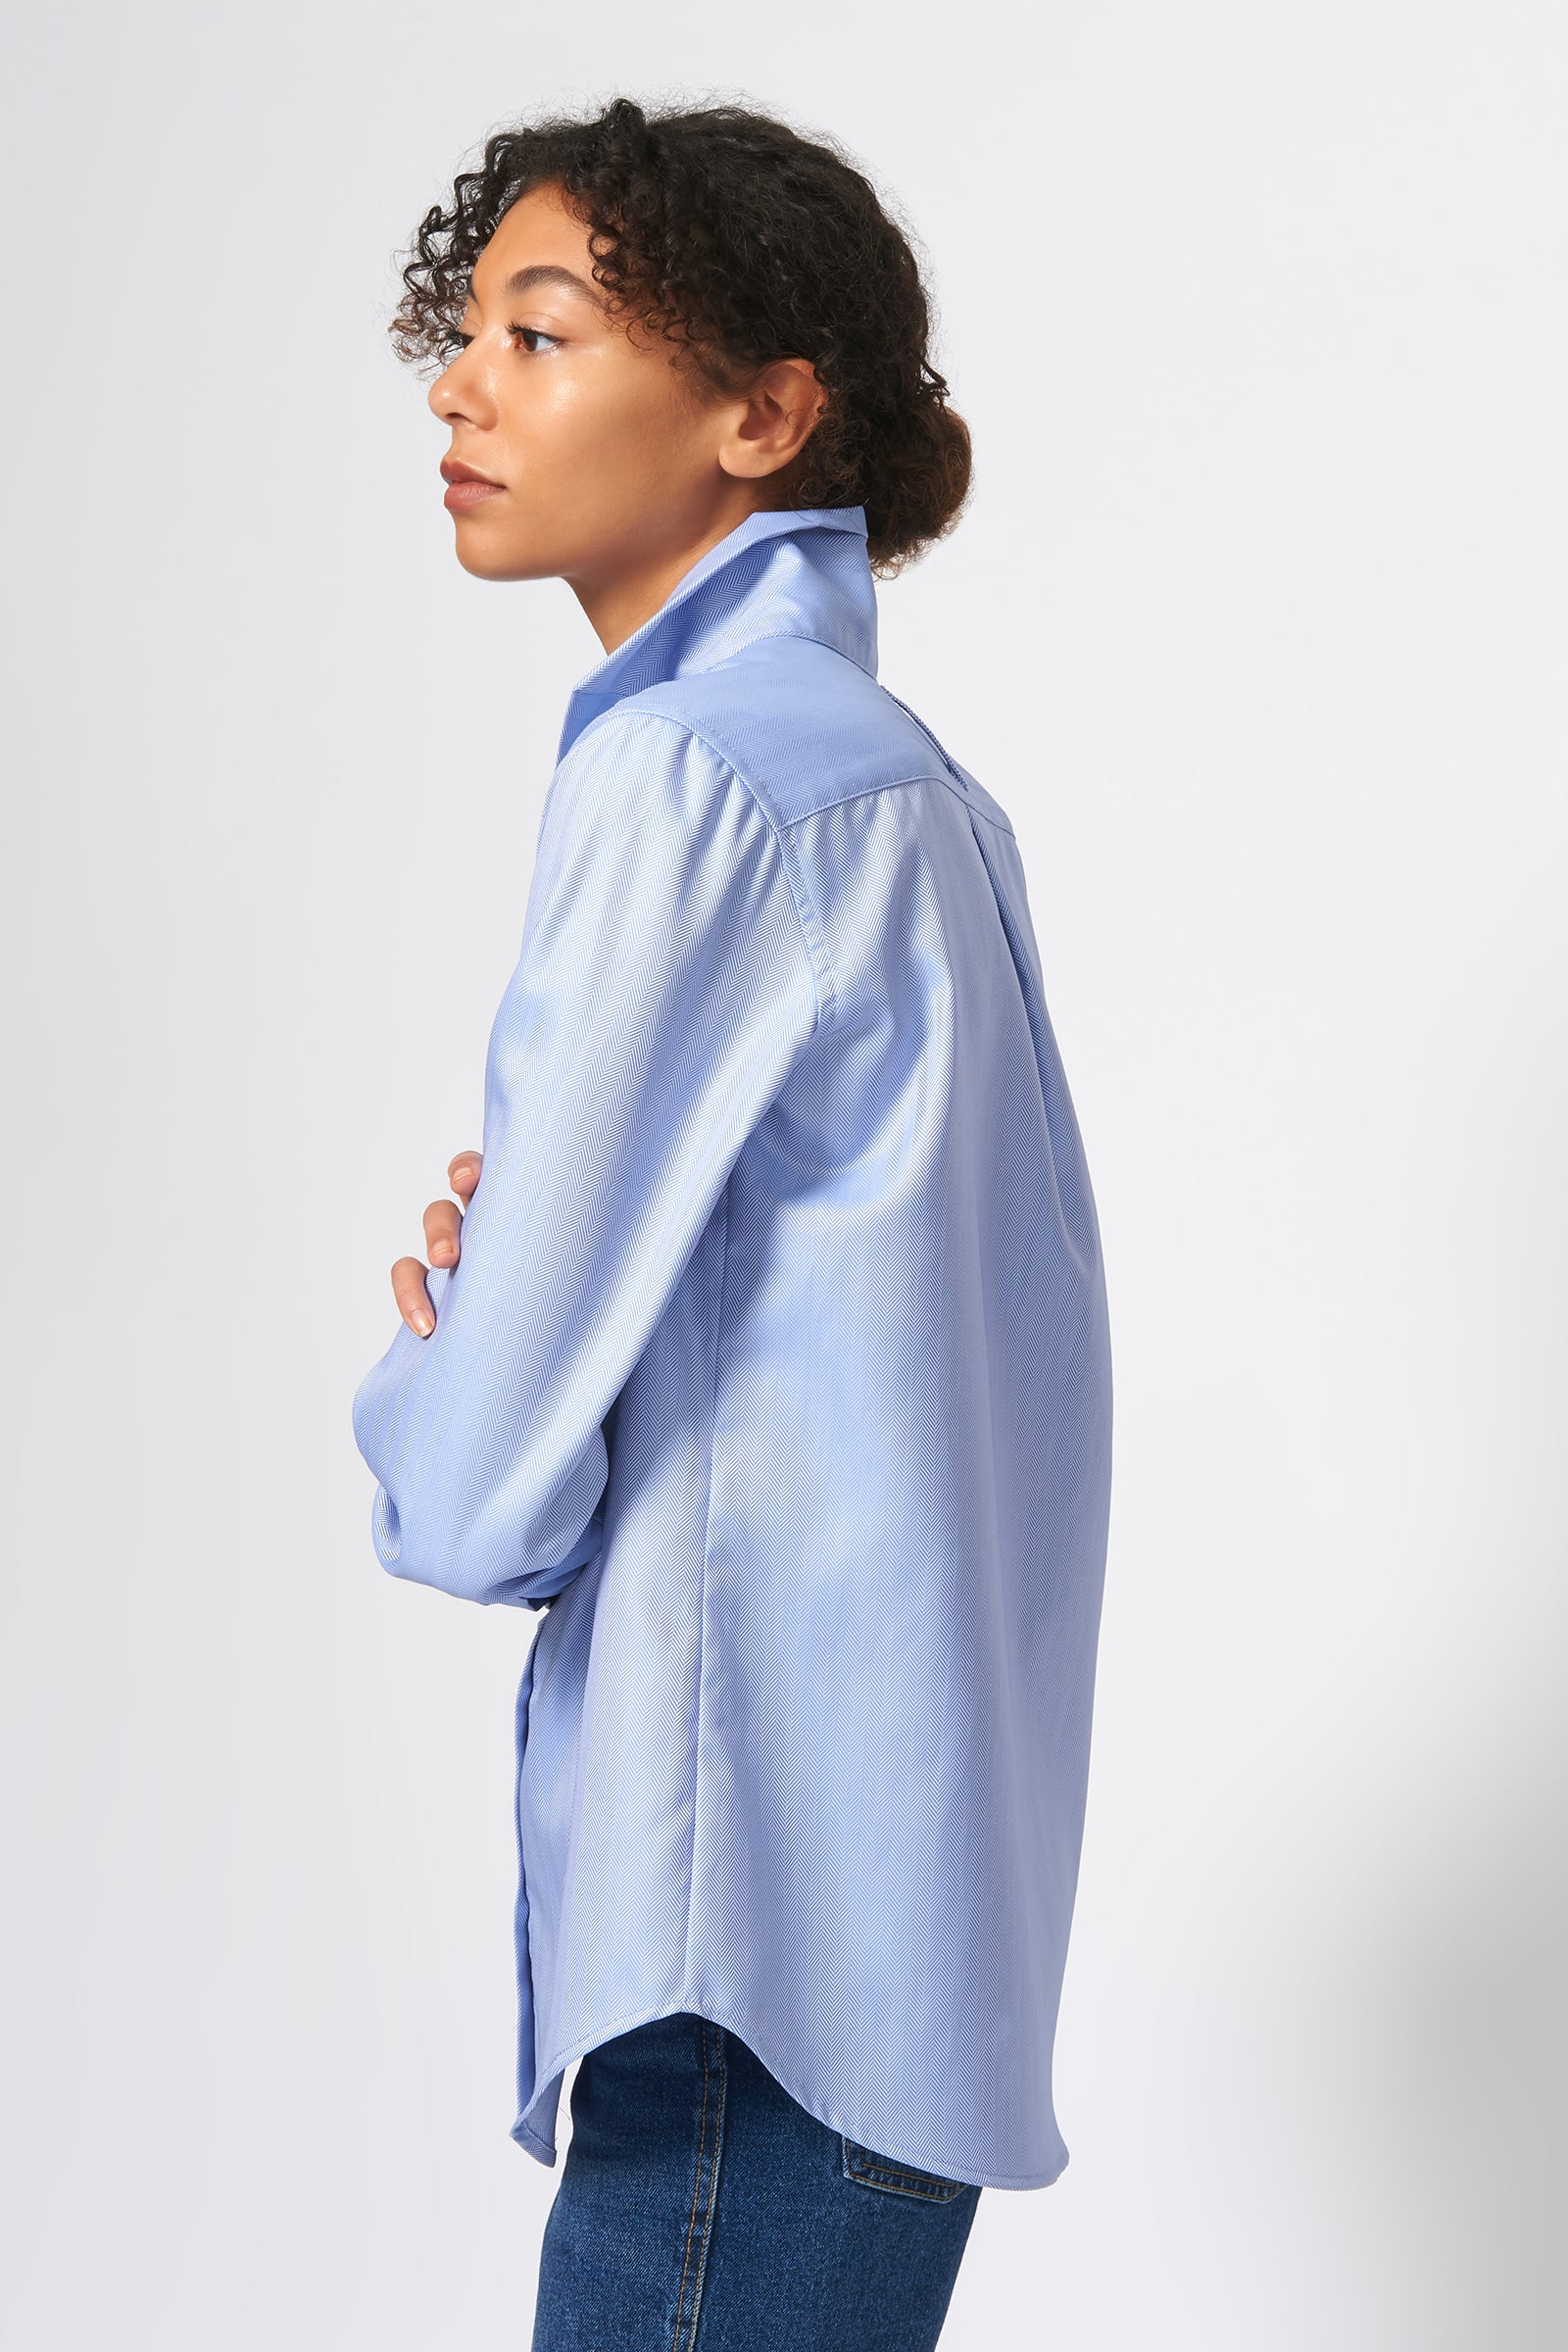 Kal Rieman Ginna Box Pleat Shirt in Denim Fine Herringbone on Model Full Front View